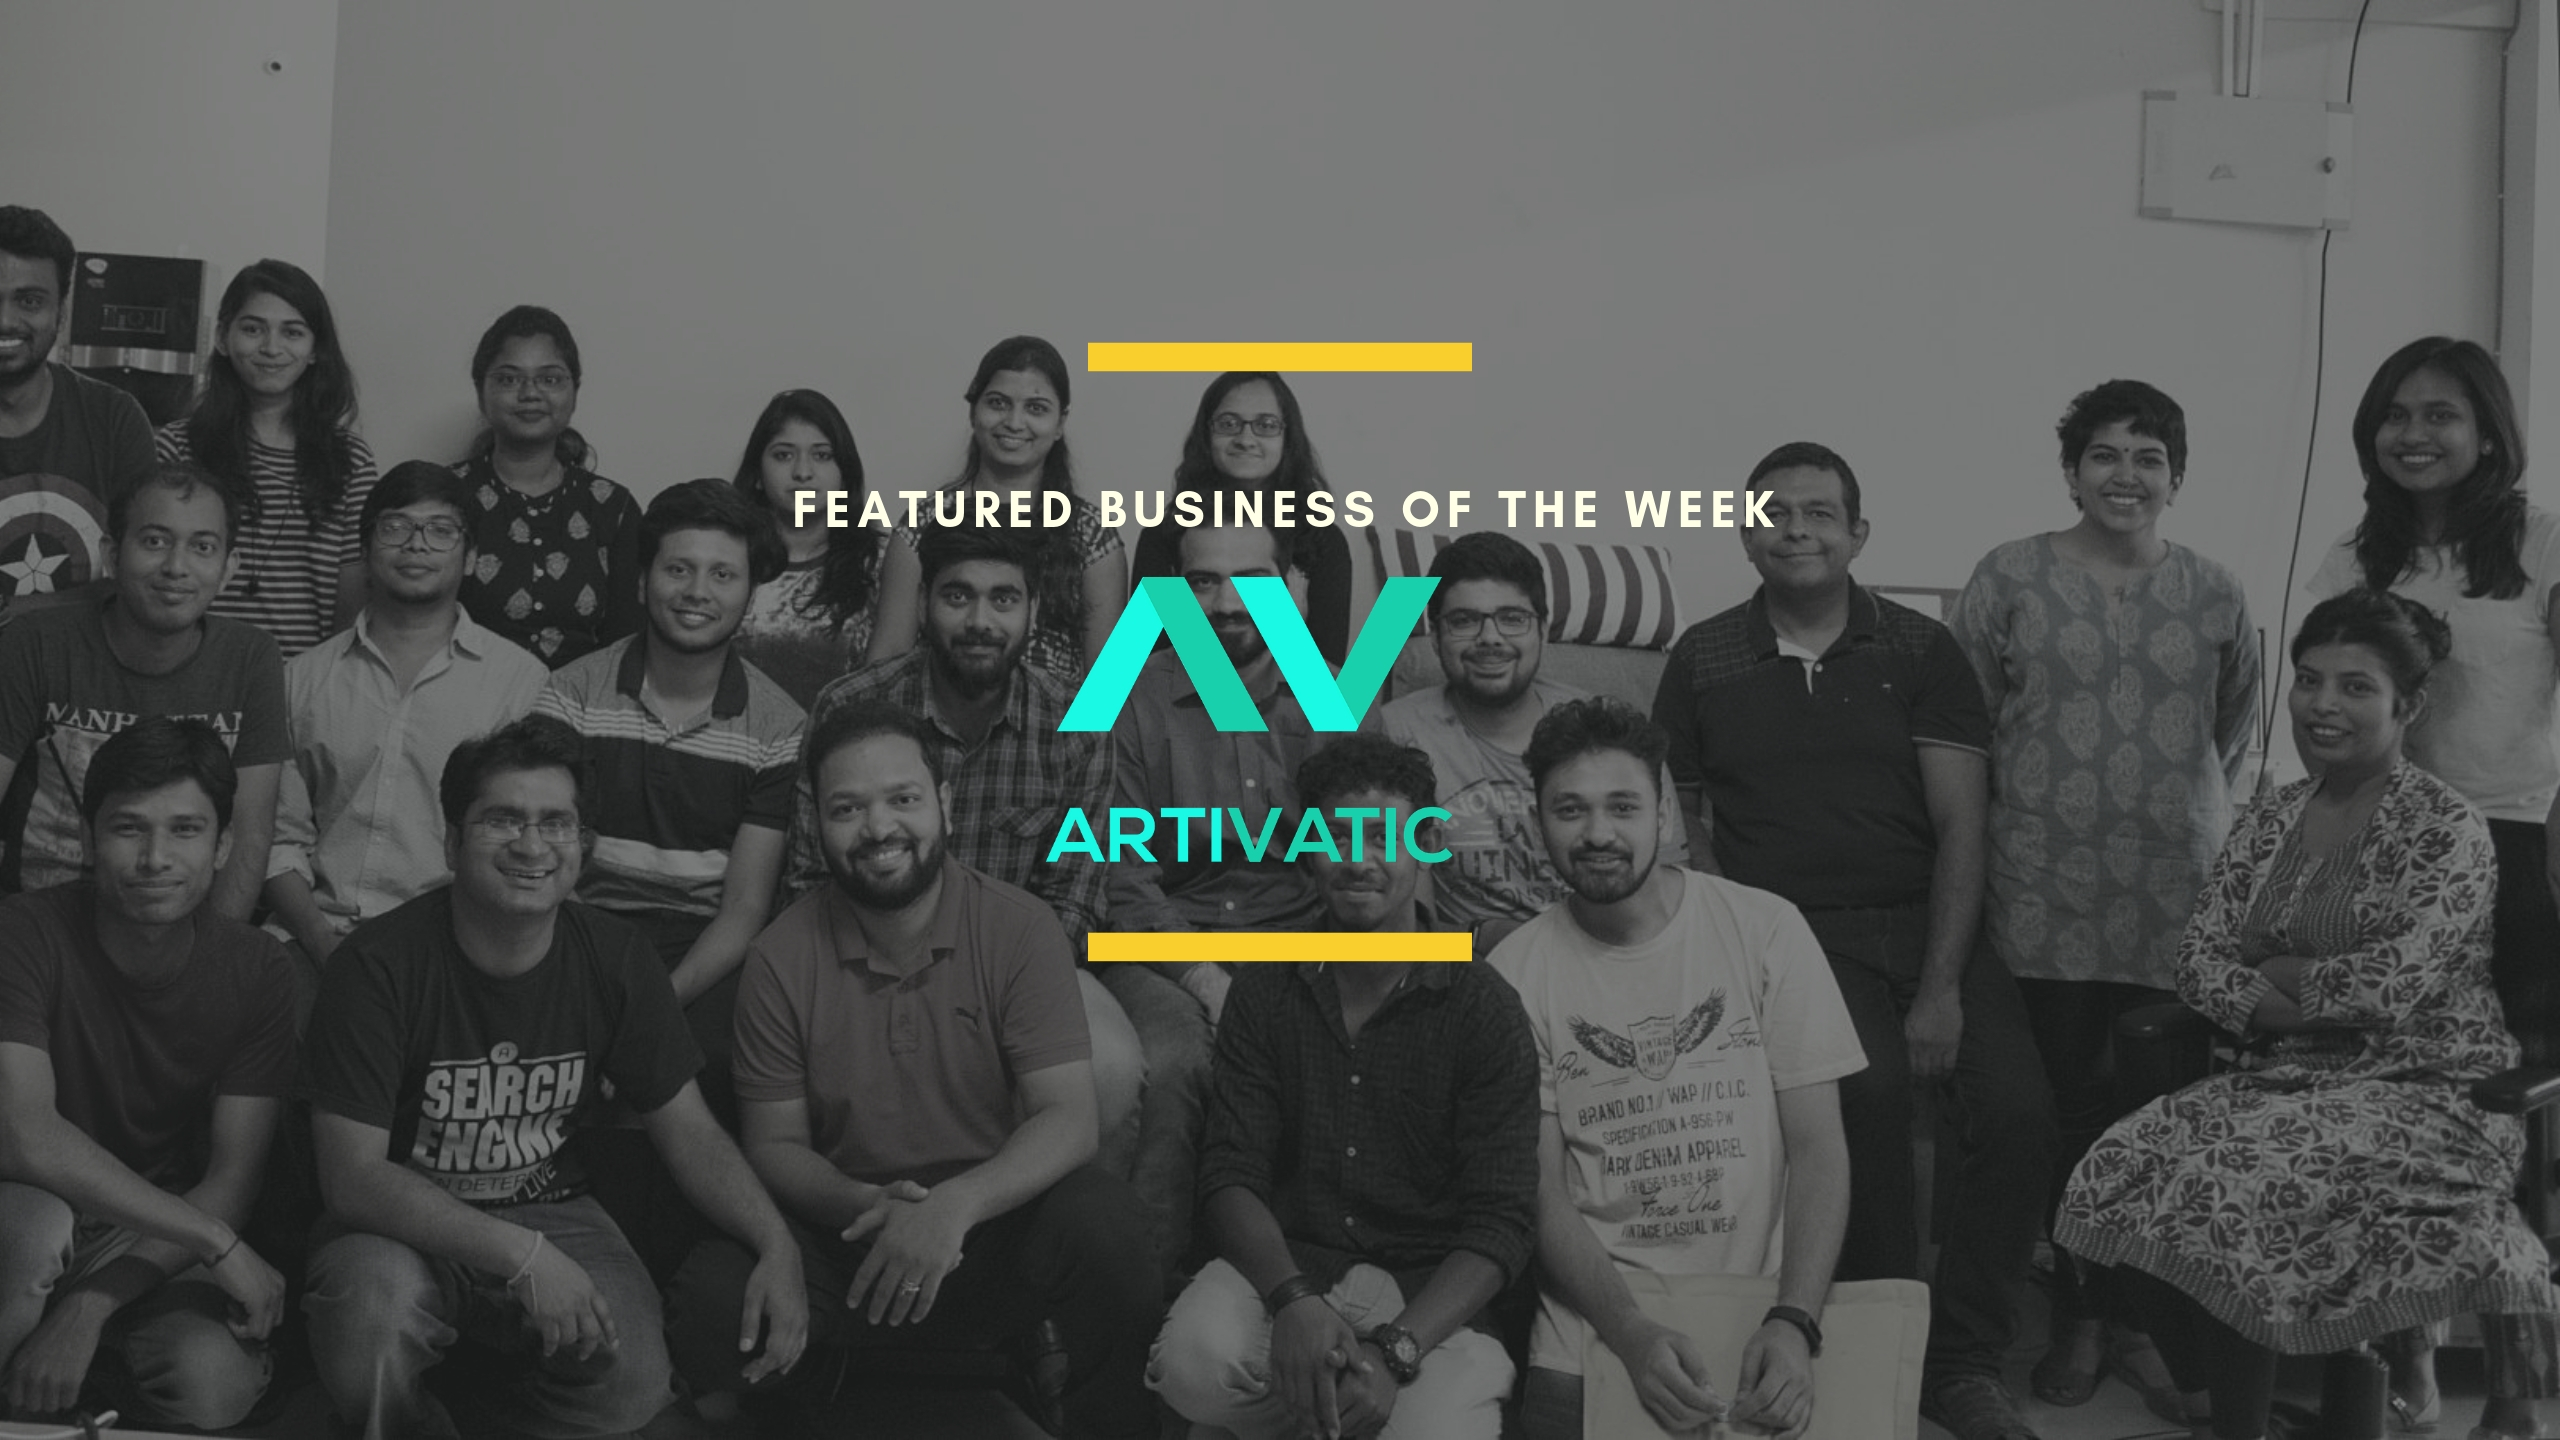 Artivatic: Featured Business Of The Week